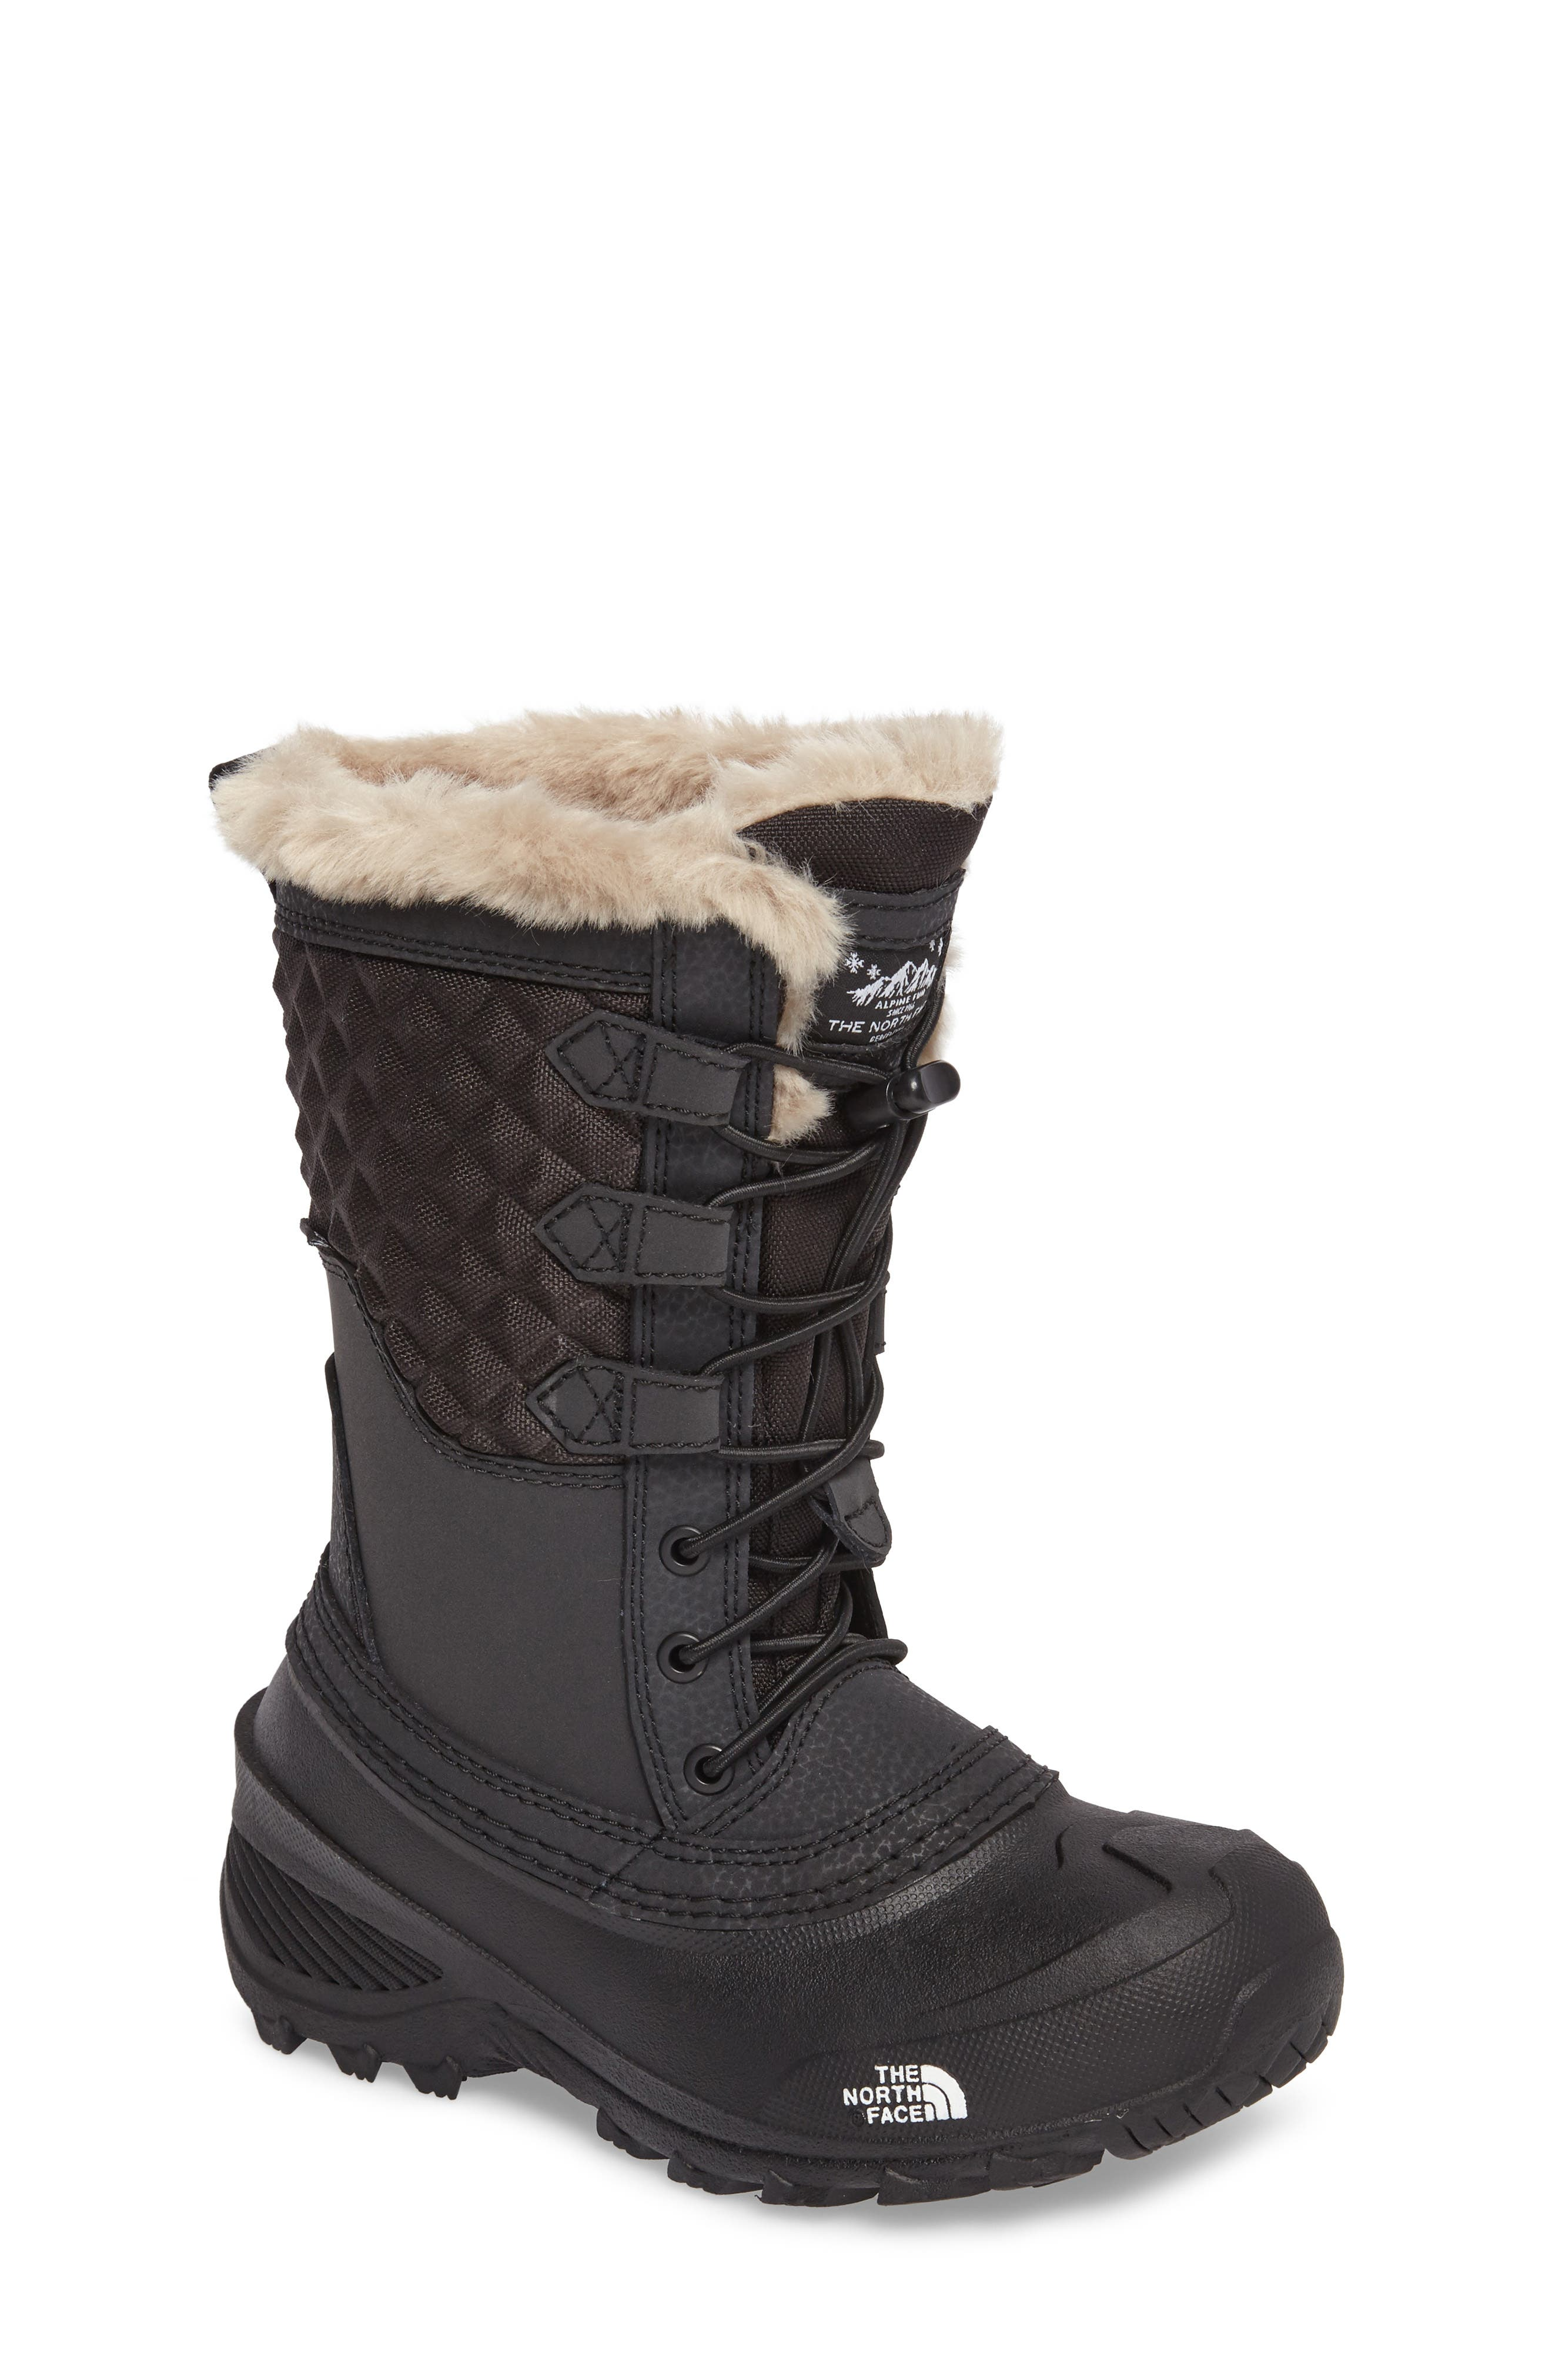 Alternate Image 1 Selected - The North Face Shellista Lace III Faux Fur Waterproof Boot (Toddler, Little Kid & Big Kid)